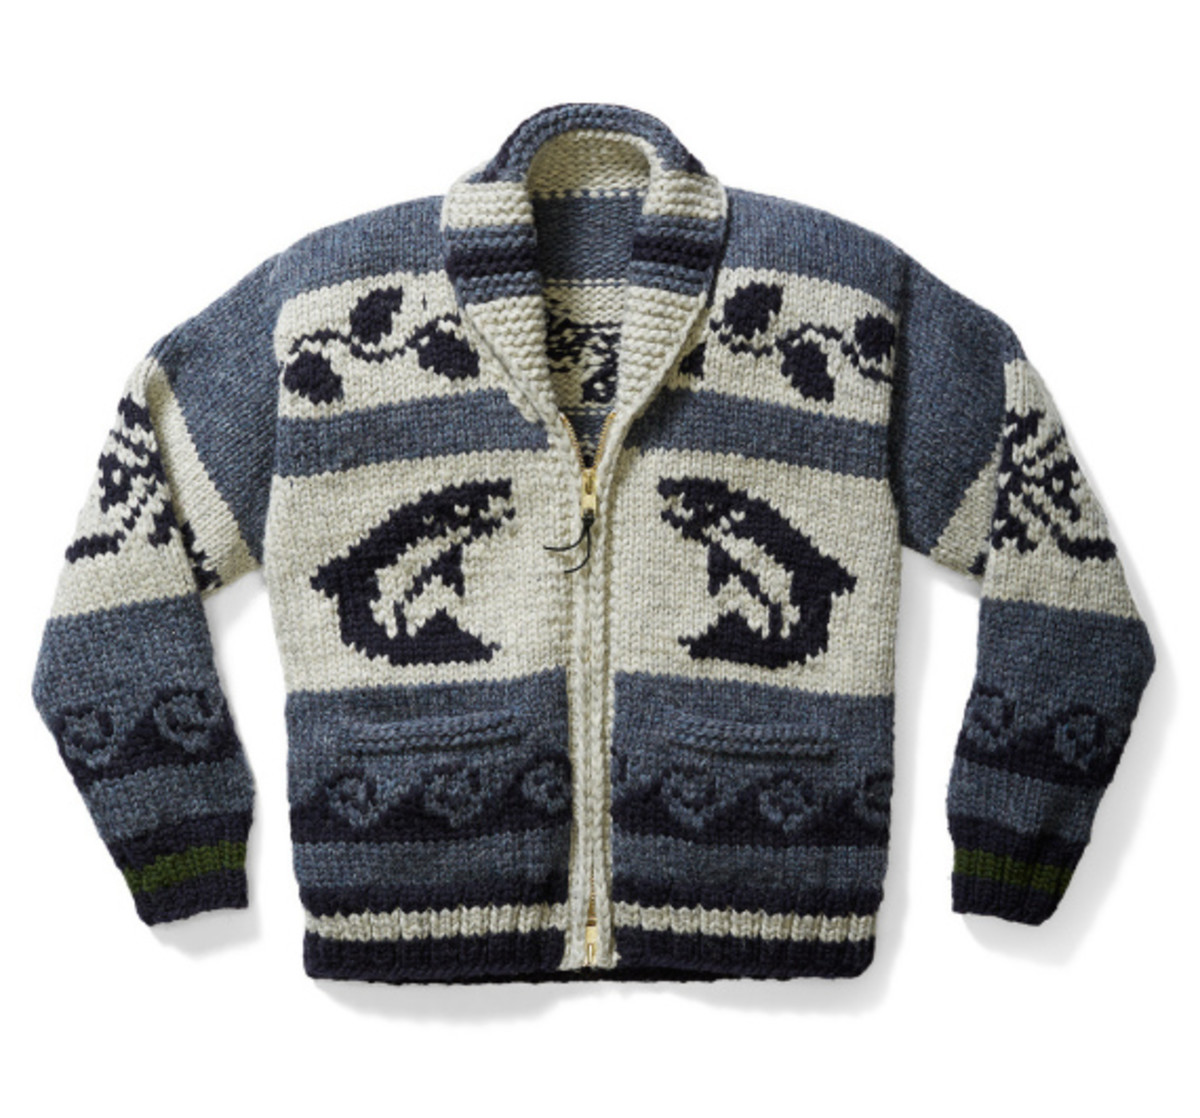 filson-fall-winter-2014-cowichan-knit-collection-04